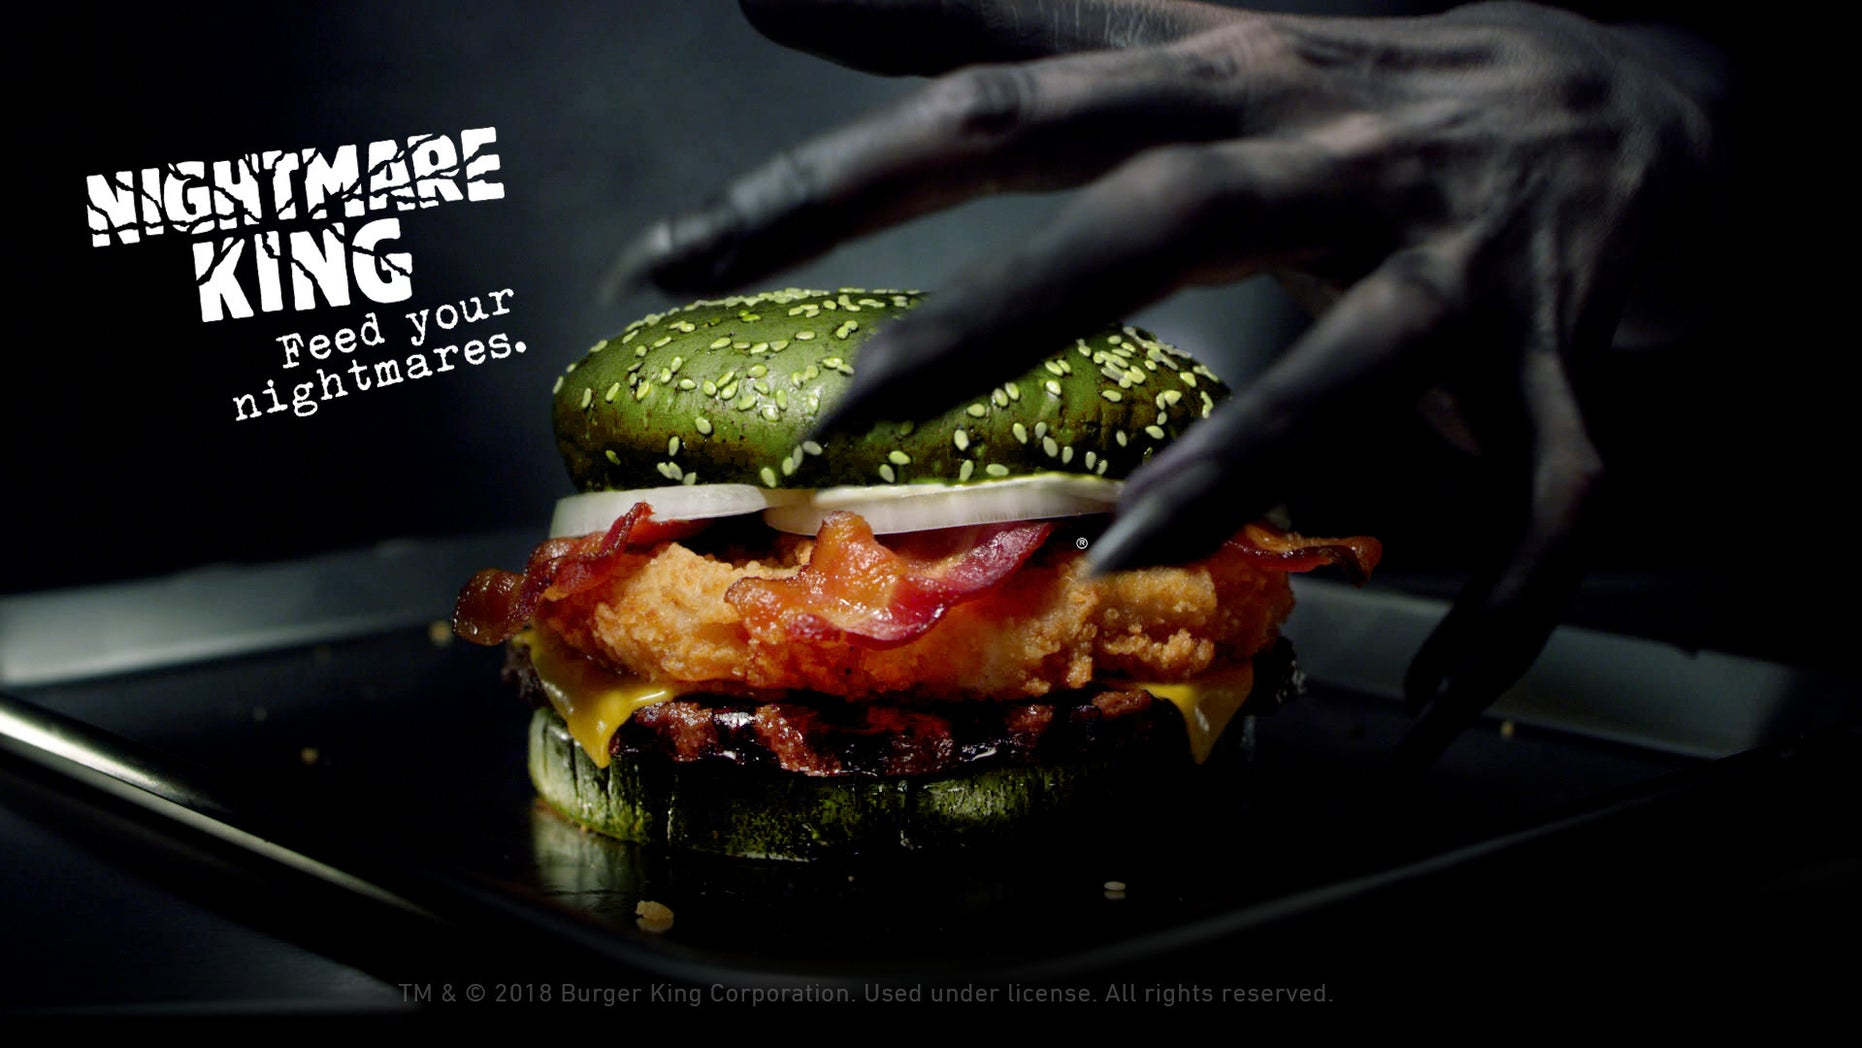 Burger King's New Halloween-Themed Burger May Give You Nightmares